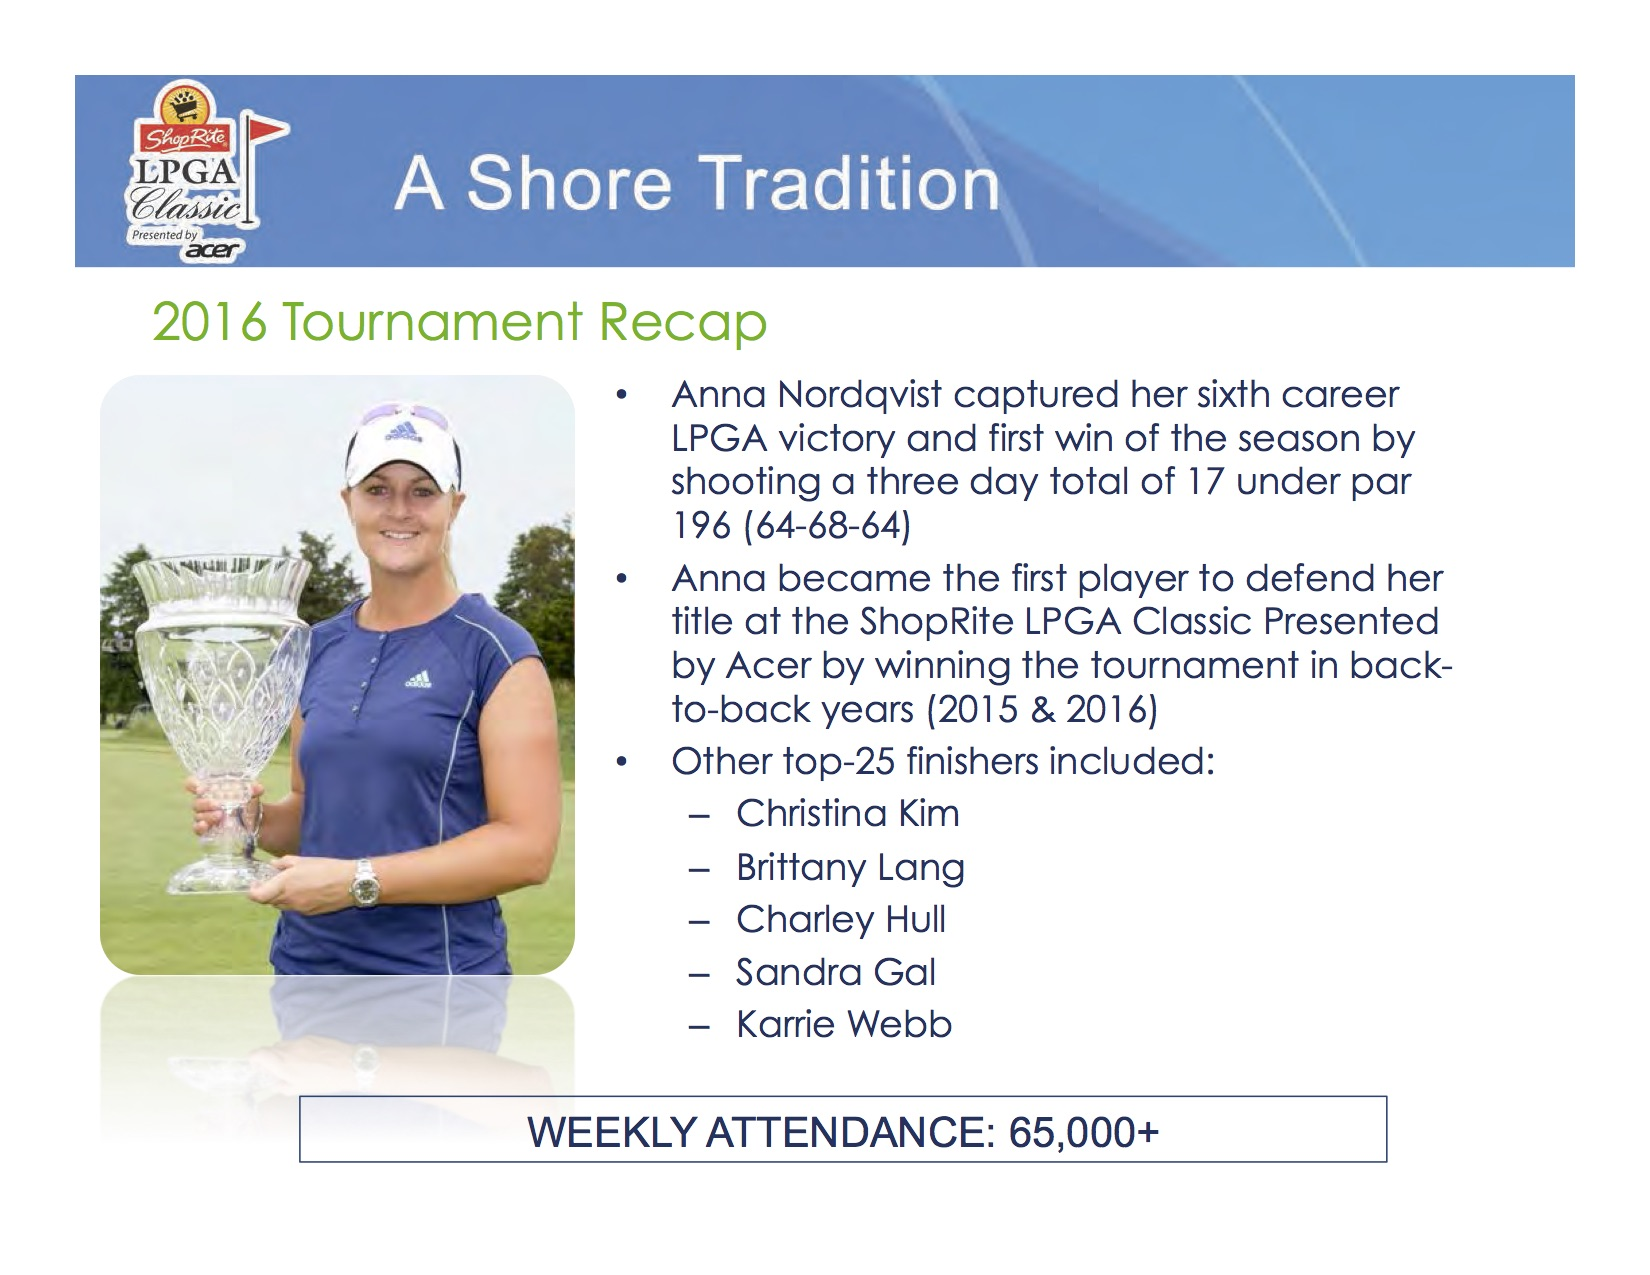 Our partnership with the LPGA Shoprite Classic